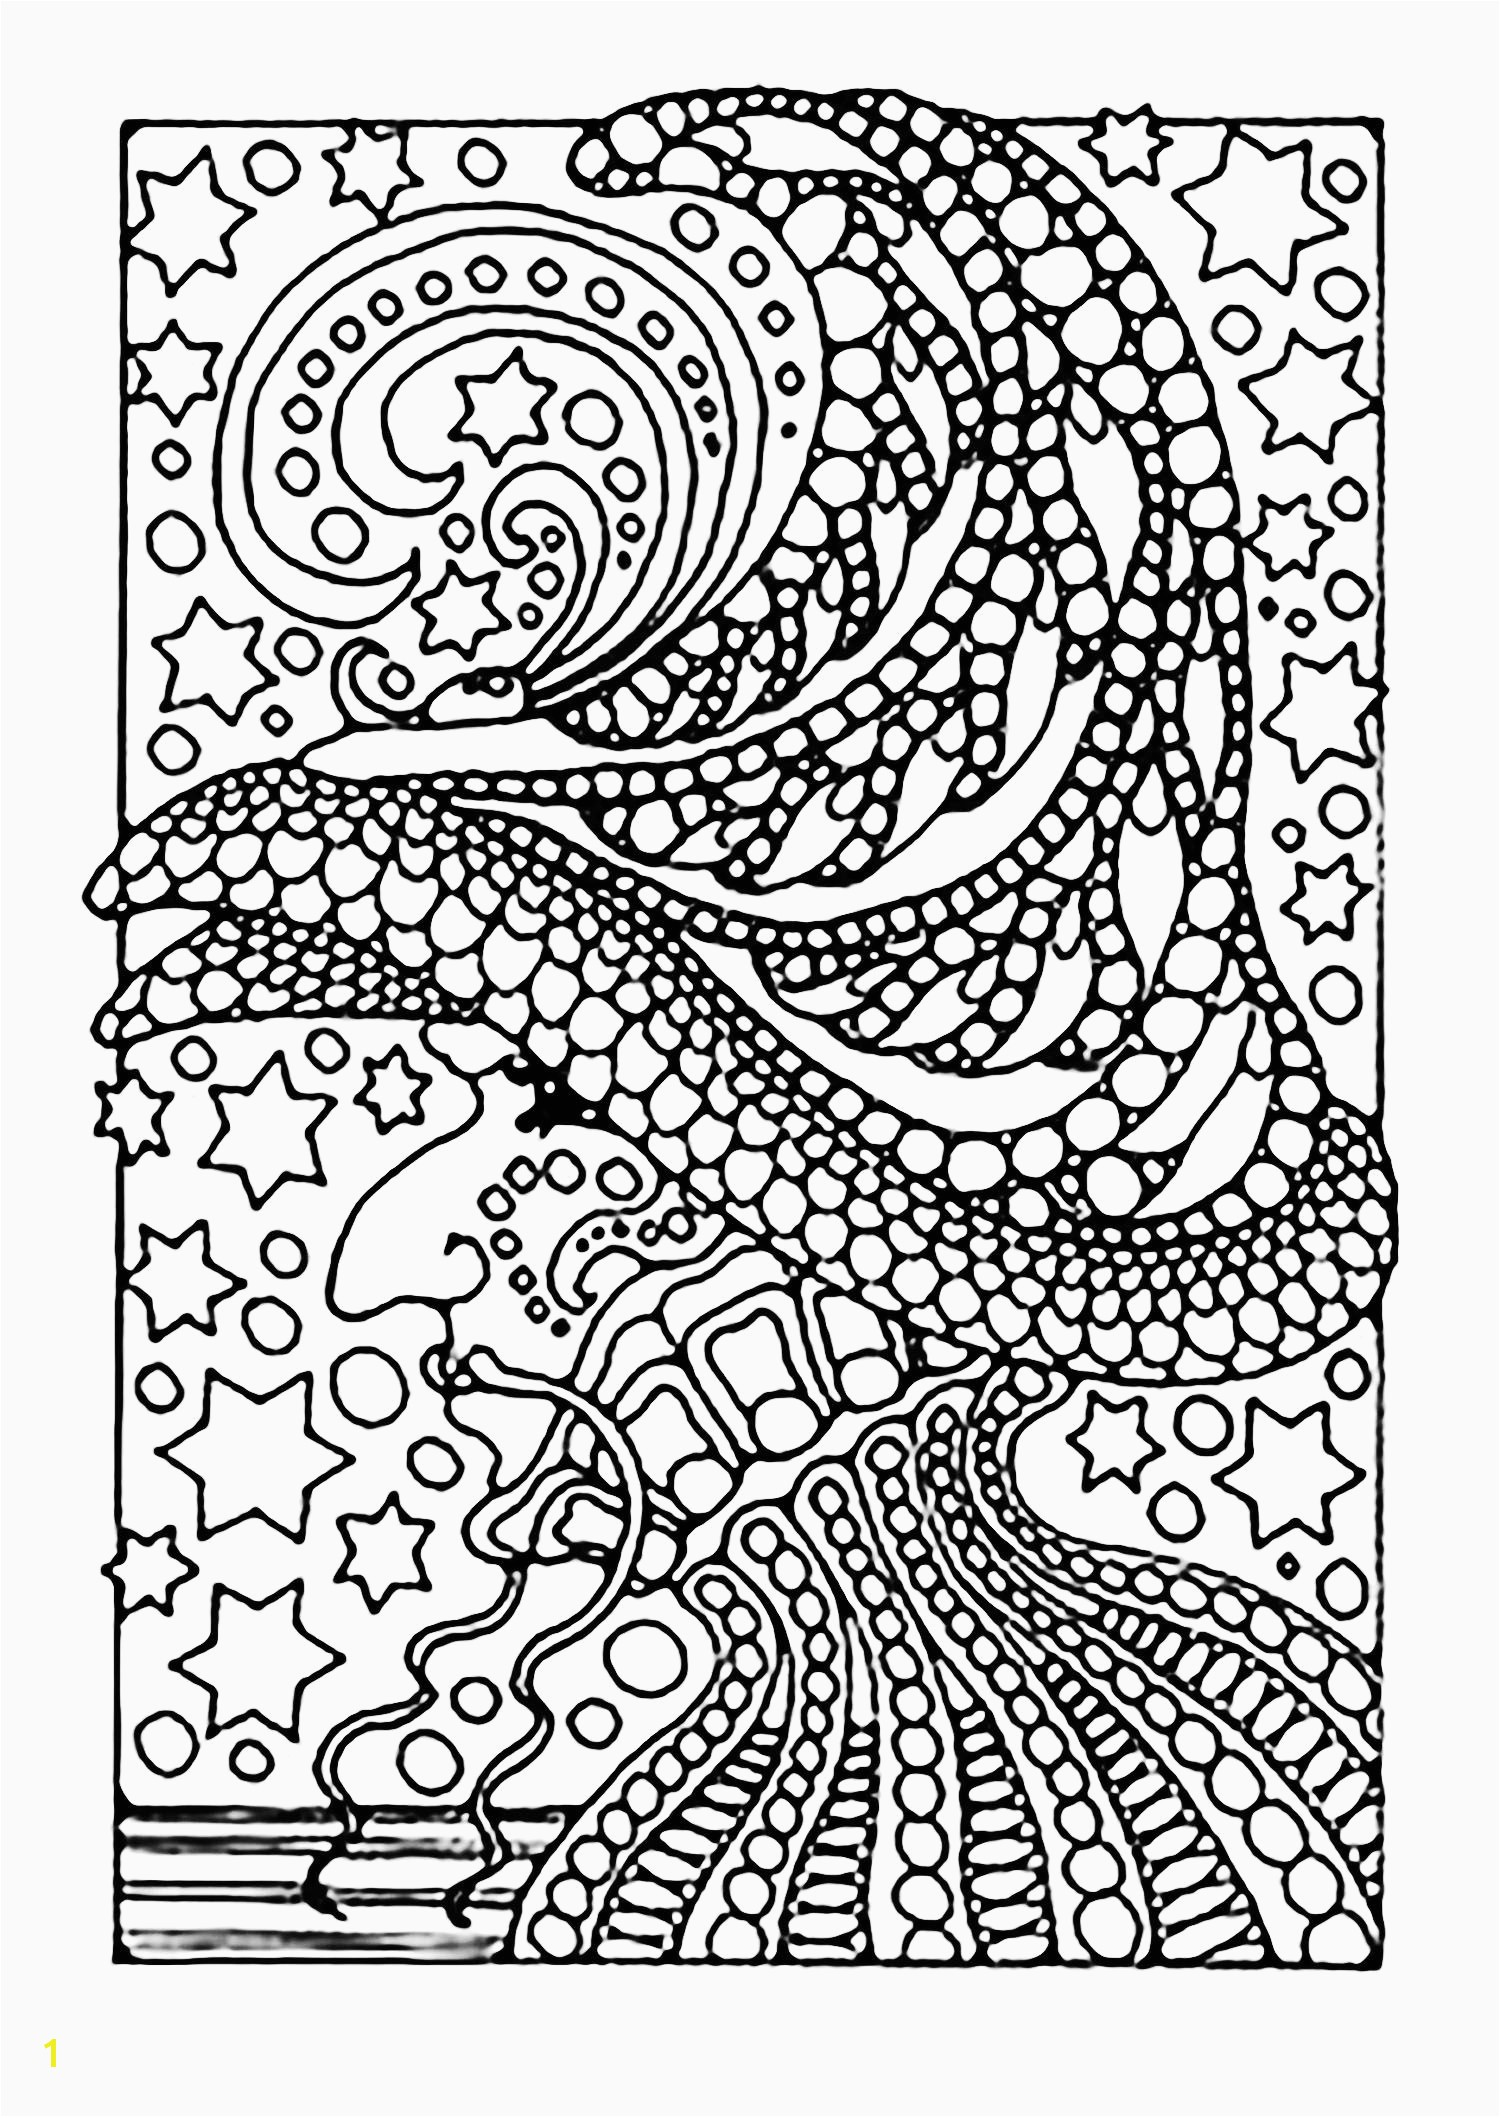 Thank You Coloring Pages Best Coloring Pages for Kids Free Line Coloring Pages to Print